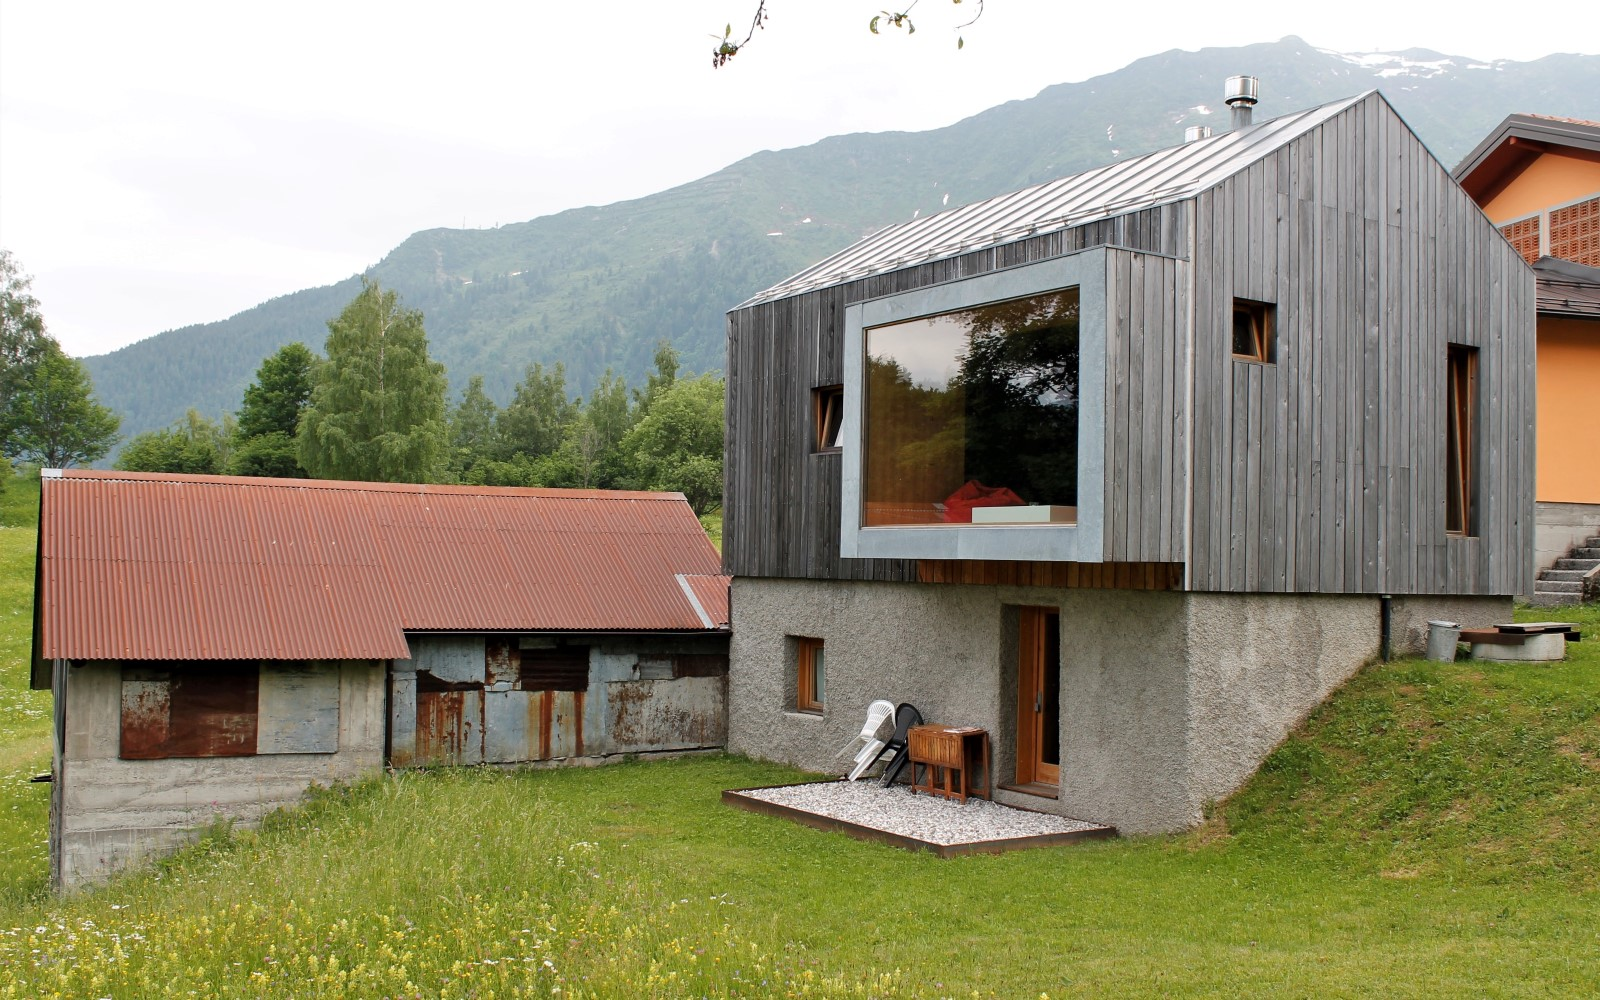 A holiday home in the Carnic Alps